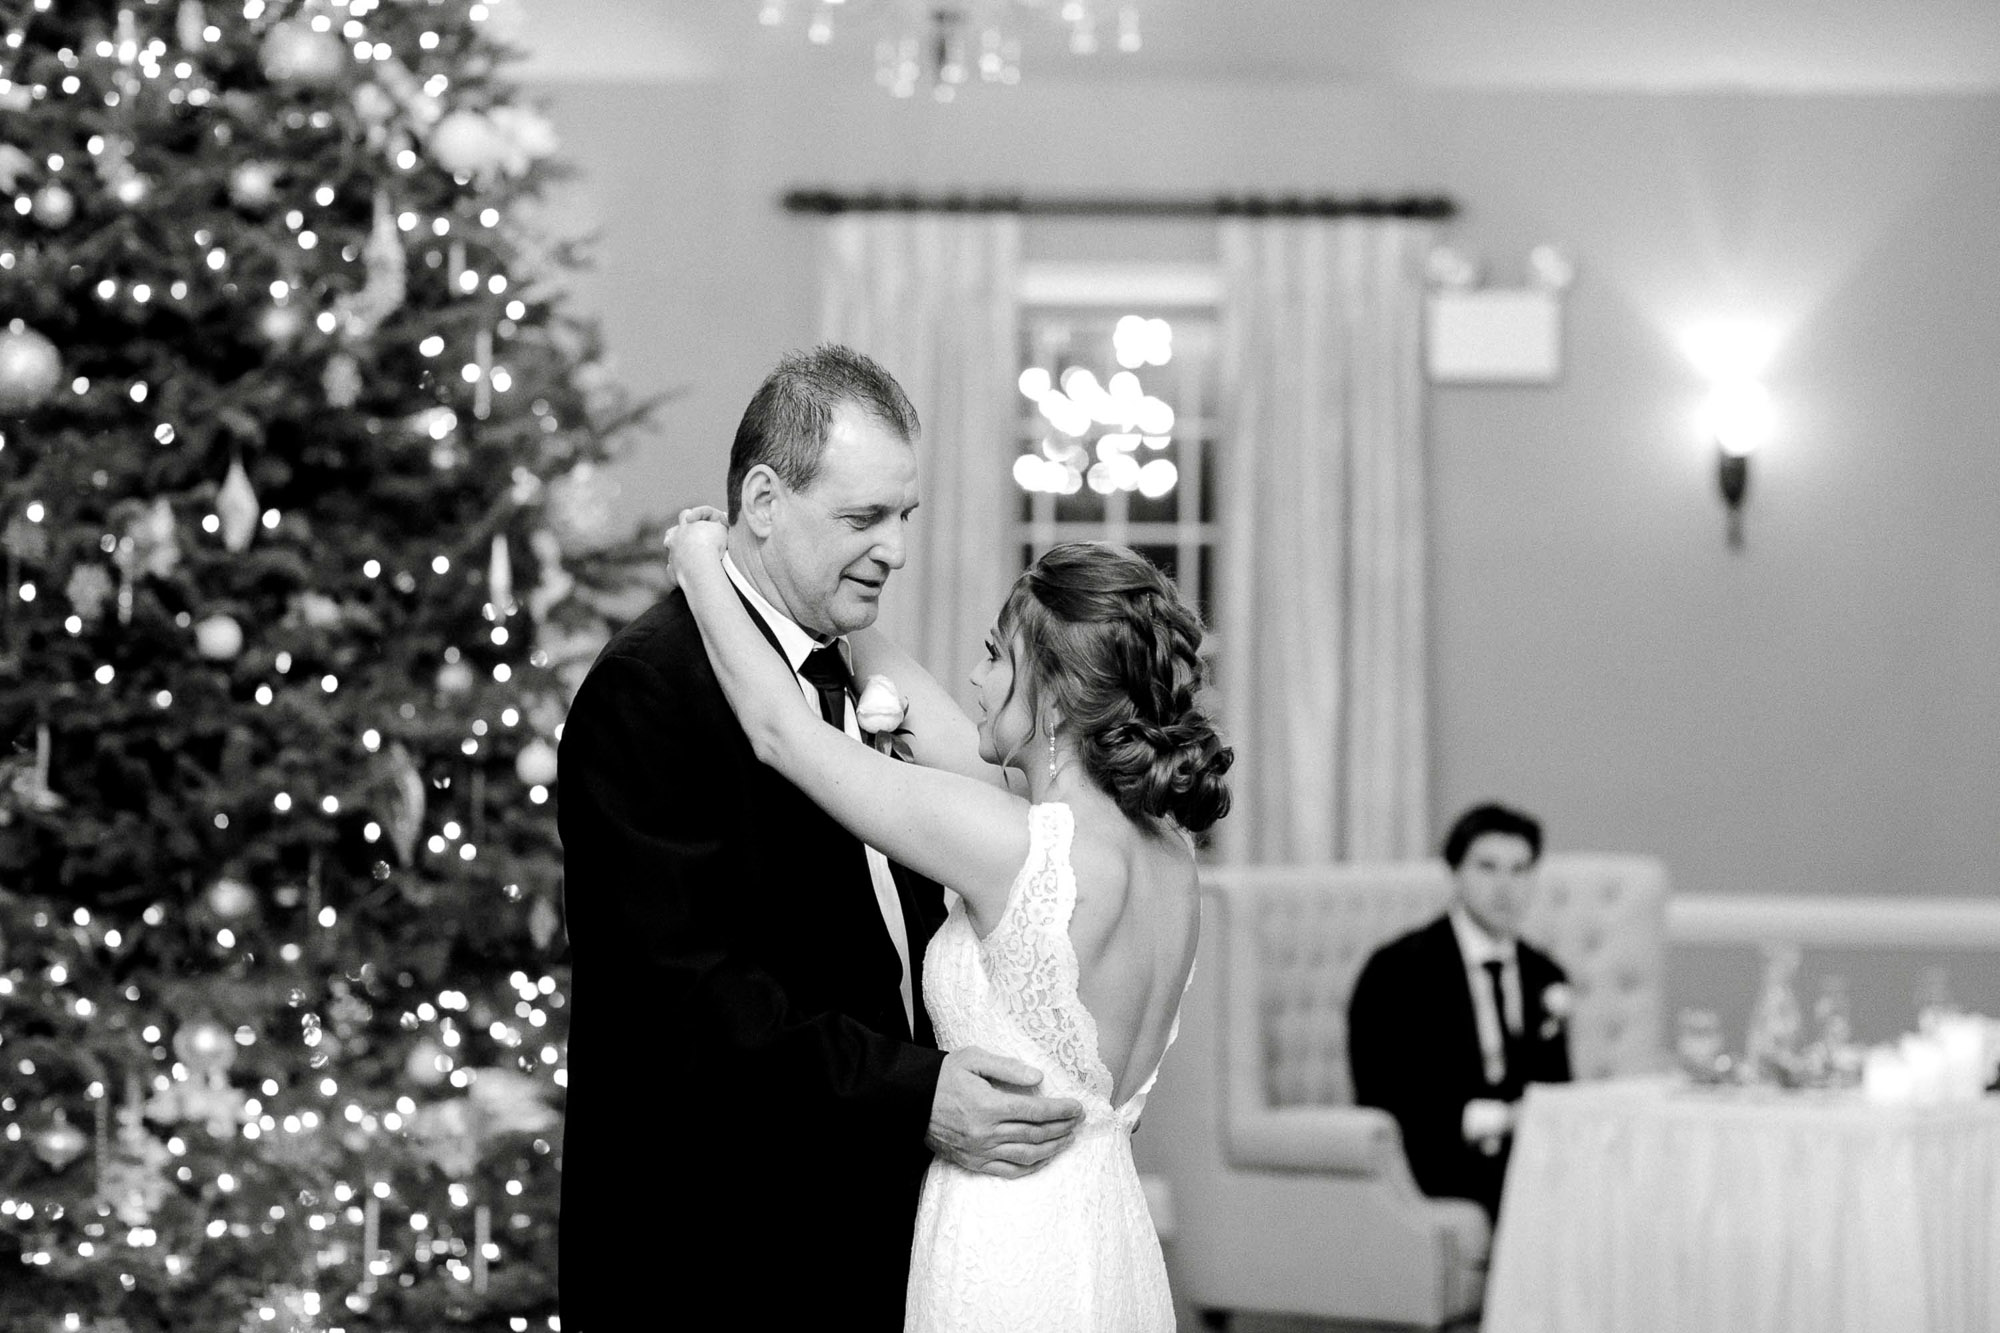 snowy-sand-springs-country-club-drums-pa-christmas-wedding-25111.jpg